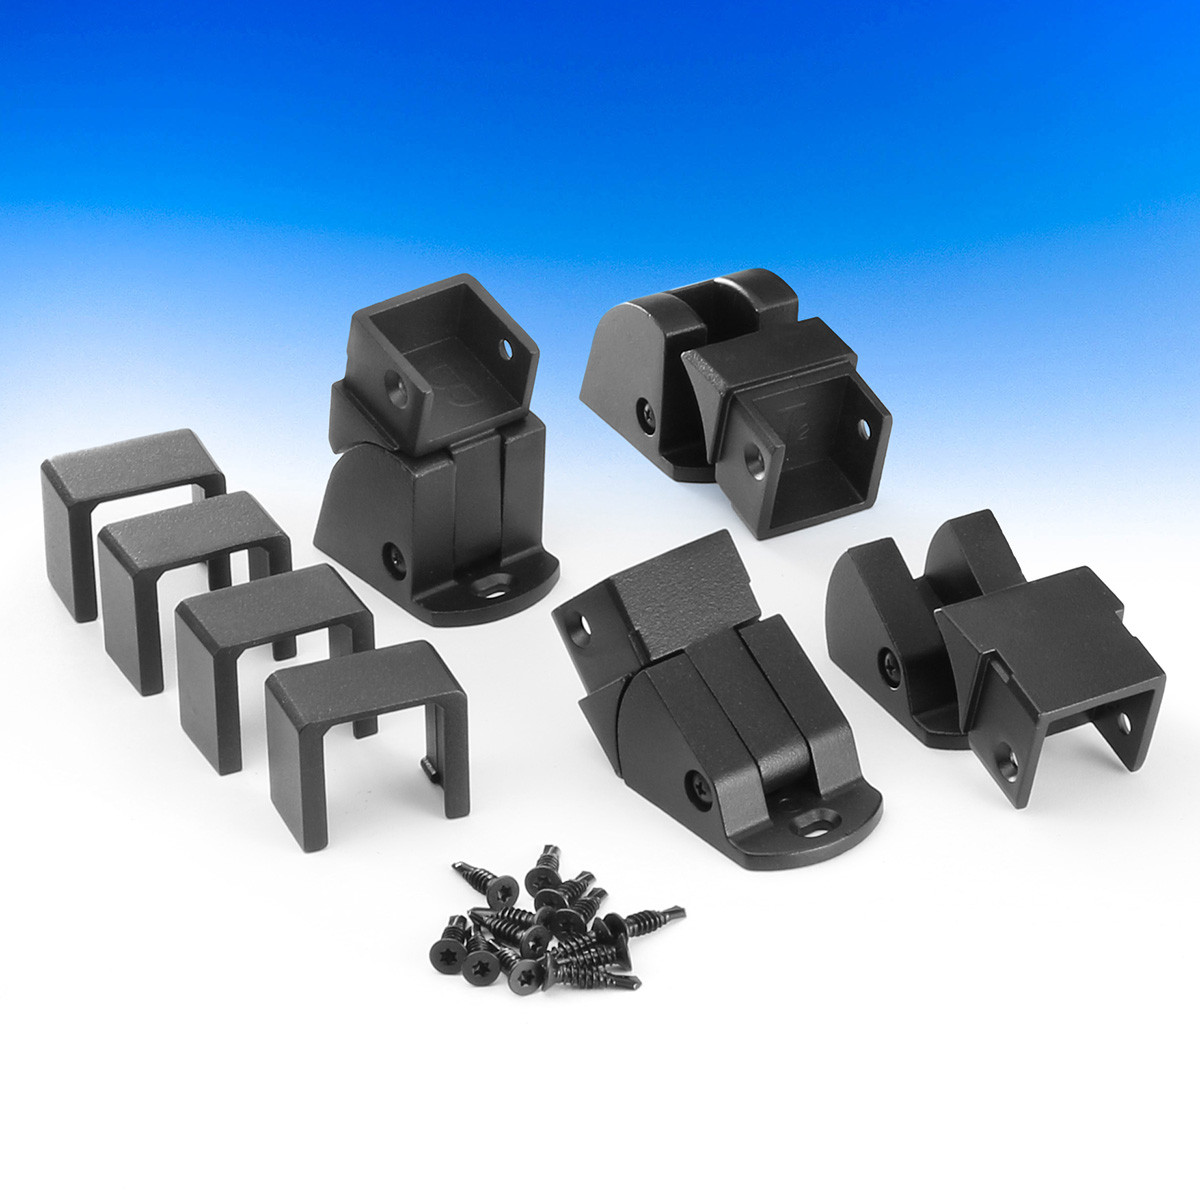 The Fortress AL13 Home Stair Rail Bracket, shown in Black Sand, contains (2) top rail brackets, (2) bottom rail brackets, and installation hardware.